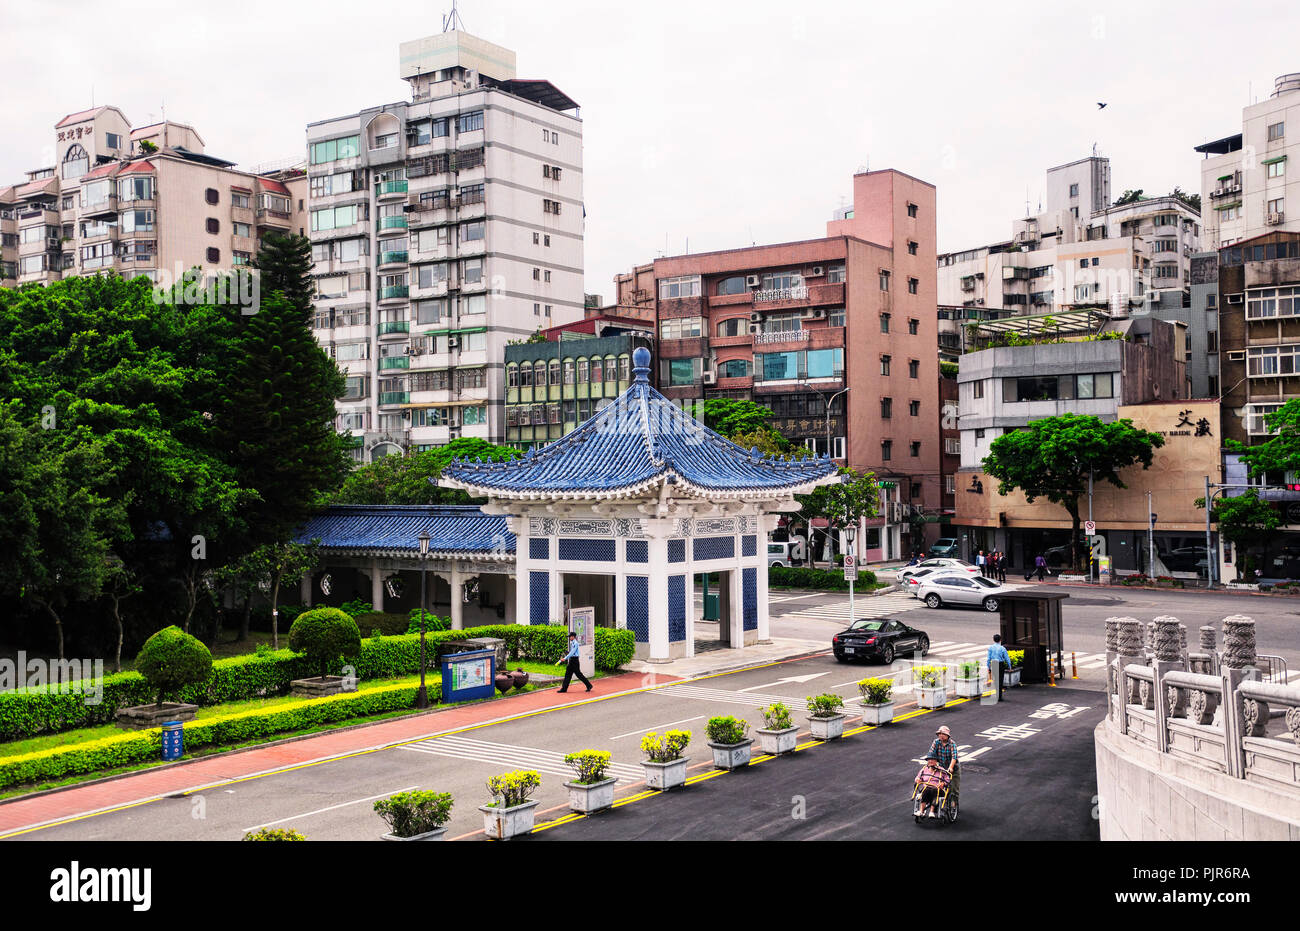 March 31, 2018.  Taipei, Taiwan.  Apartment buildings in the Zhongzheng district of Taipei Taiwan near the entrance of the National Theater Hall. - Stock Image